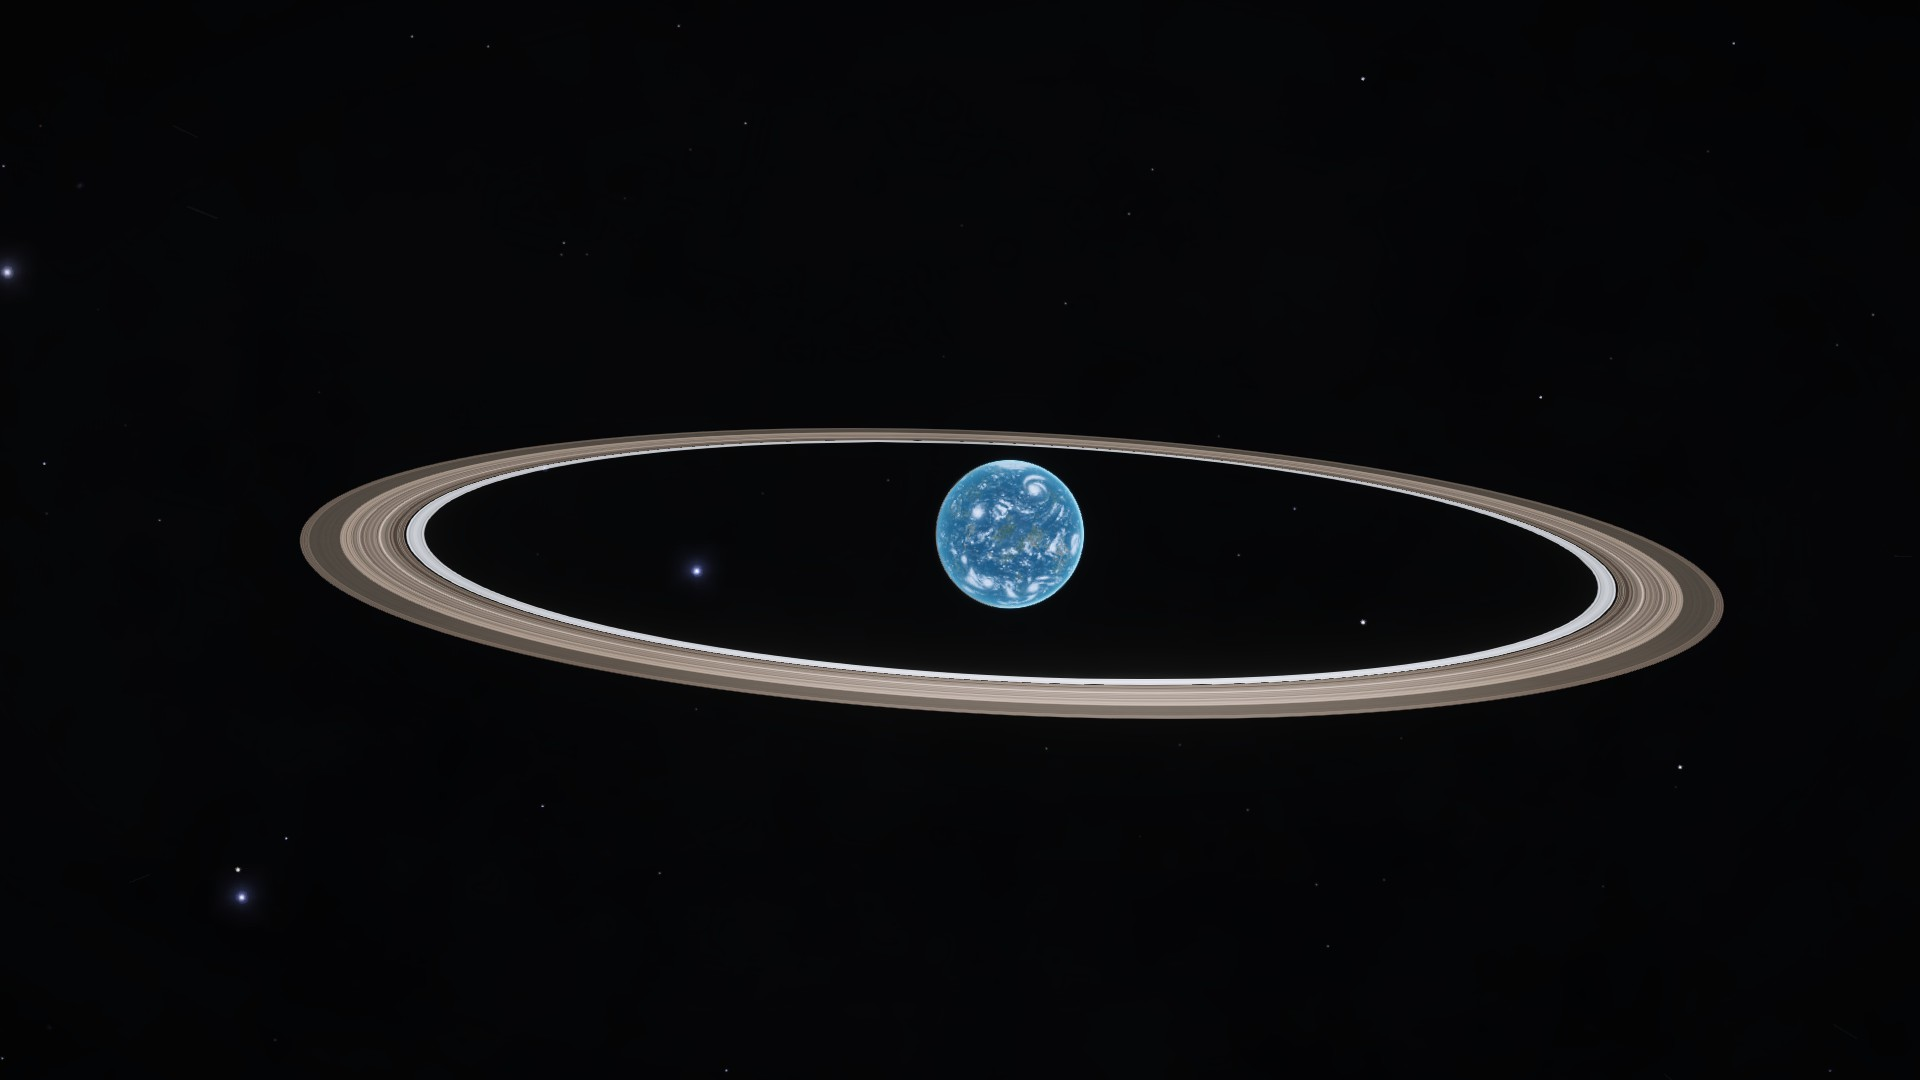 ELW with Rings